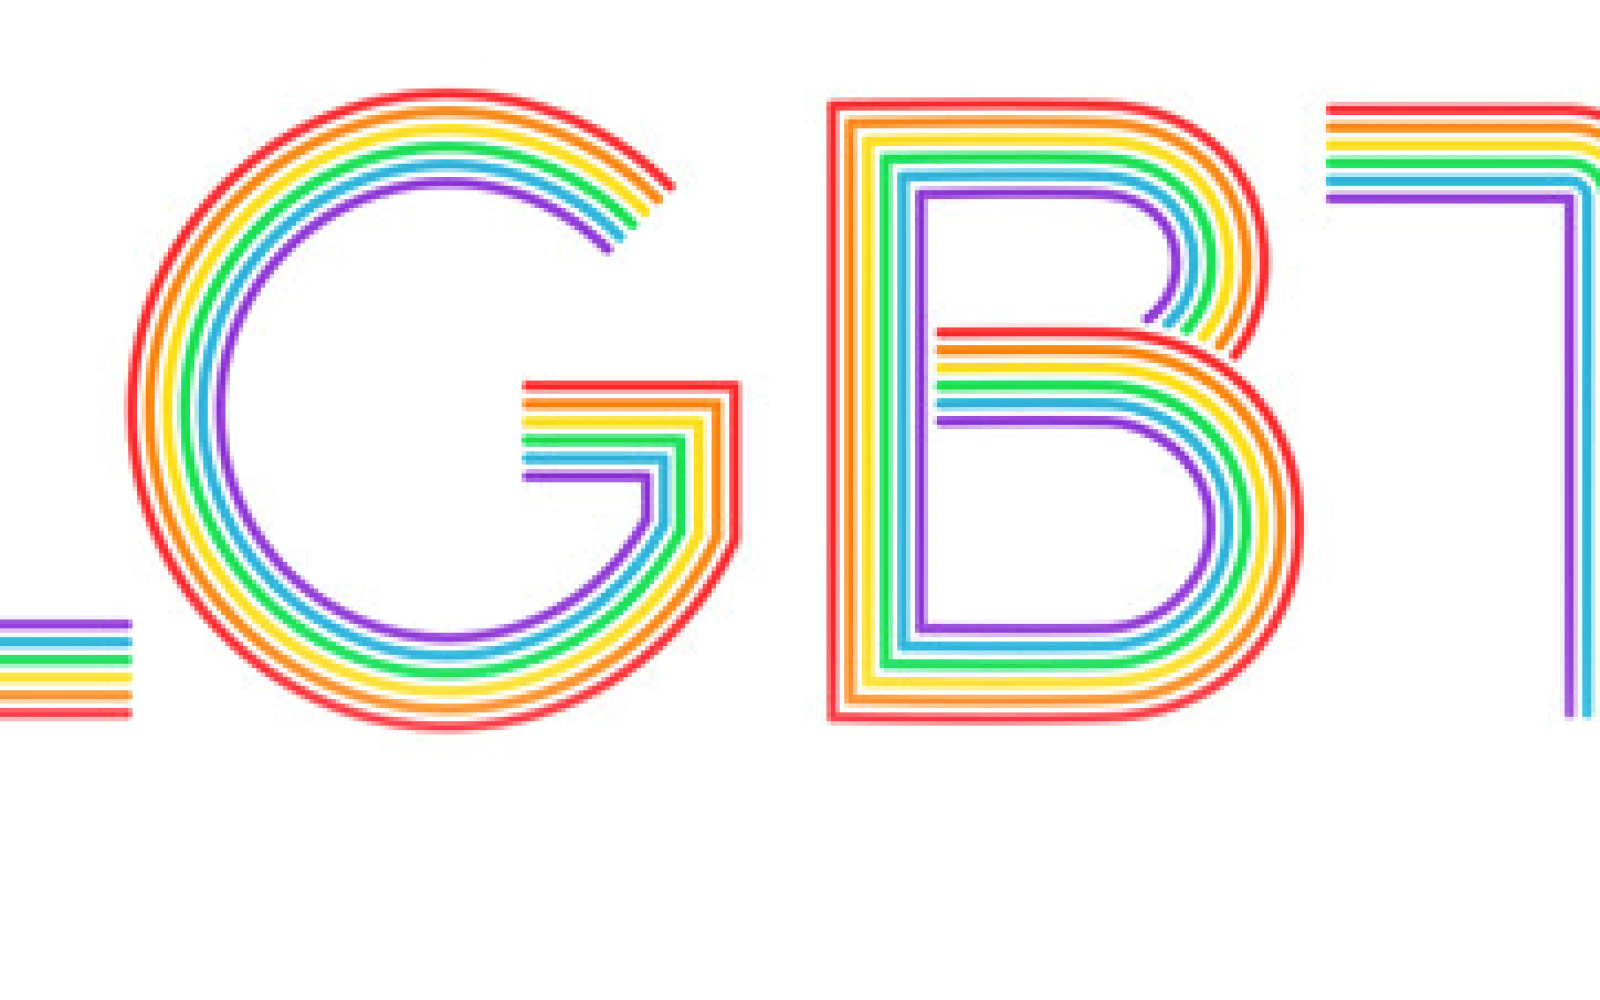 Apple launches new App Store section showcasing LGBT content to commemorate 1969 Stonewall riots